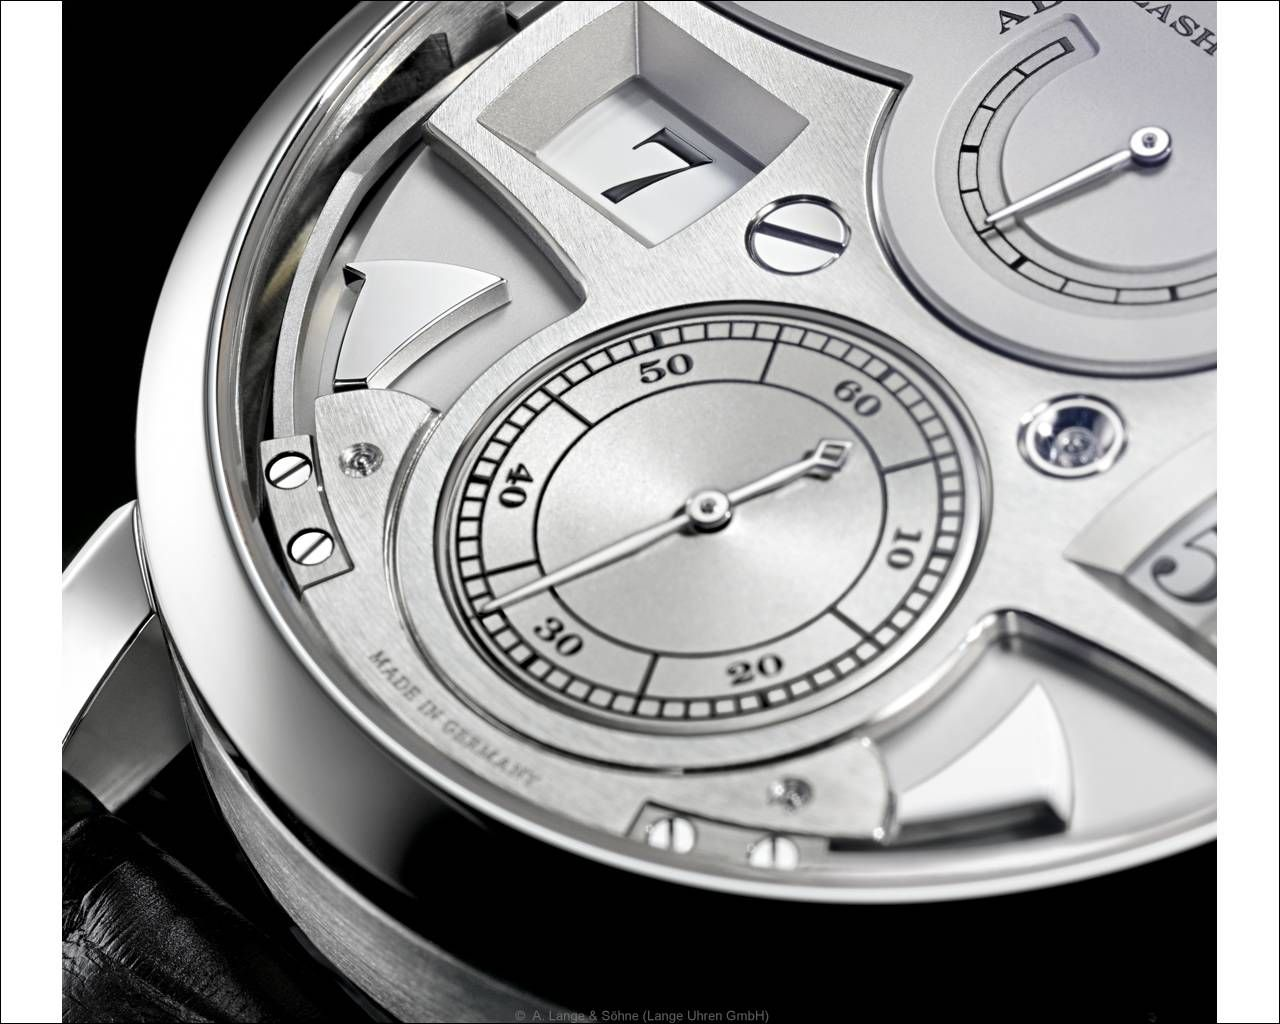 A. Lange & Söhne> Zeitwerk Striking Time >Ref. 145.025